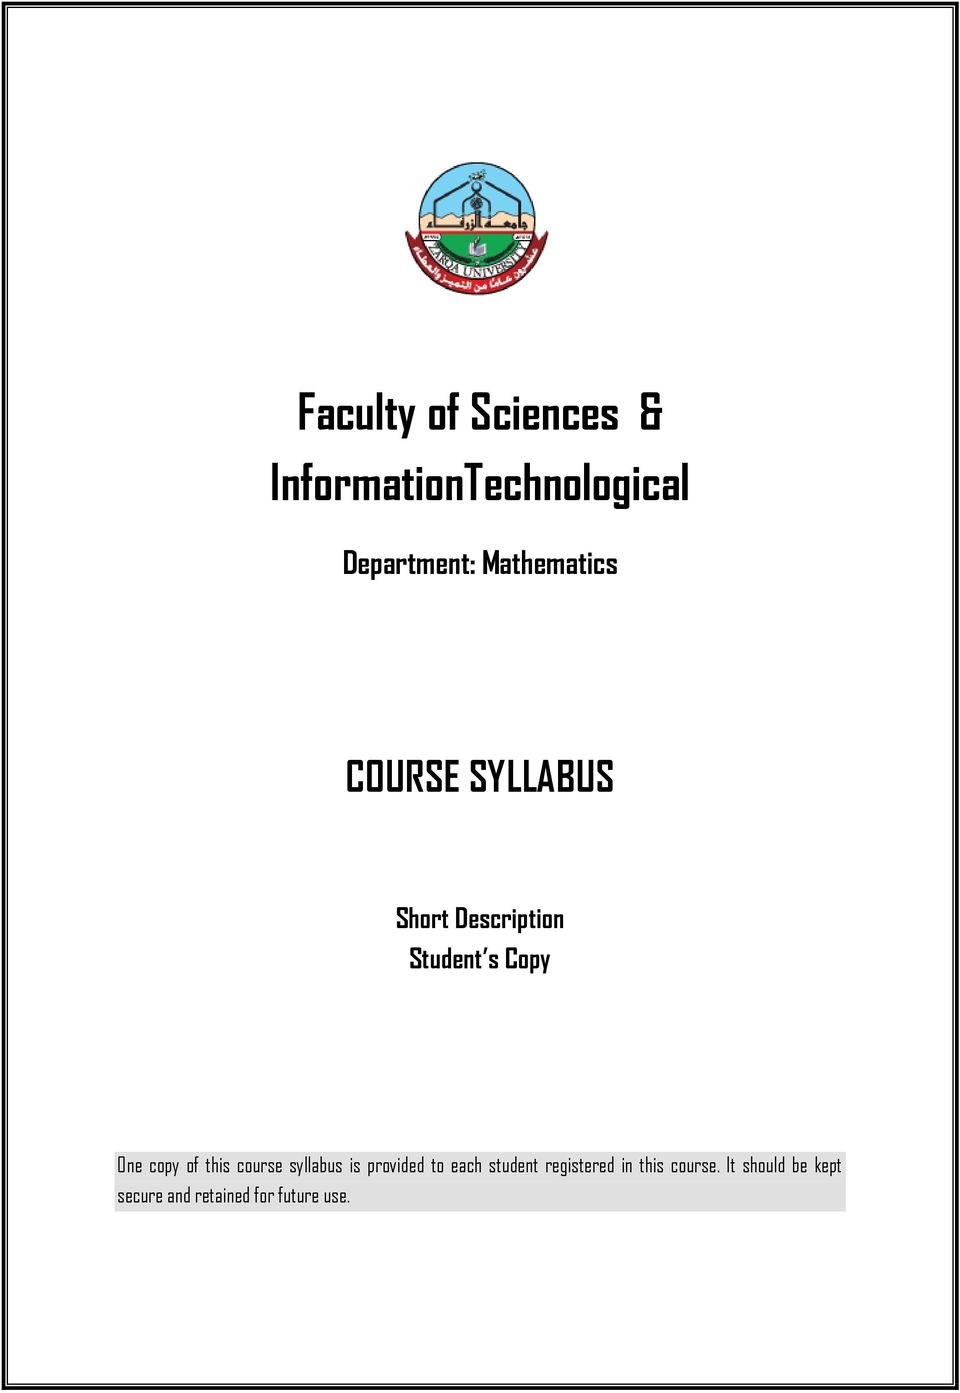 copy of this course syllabus is provided to each student